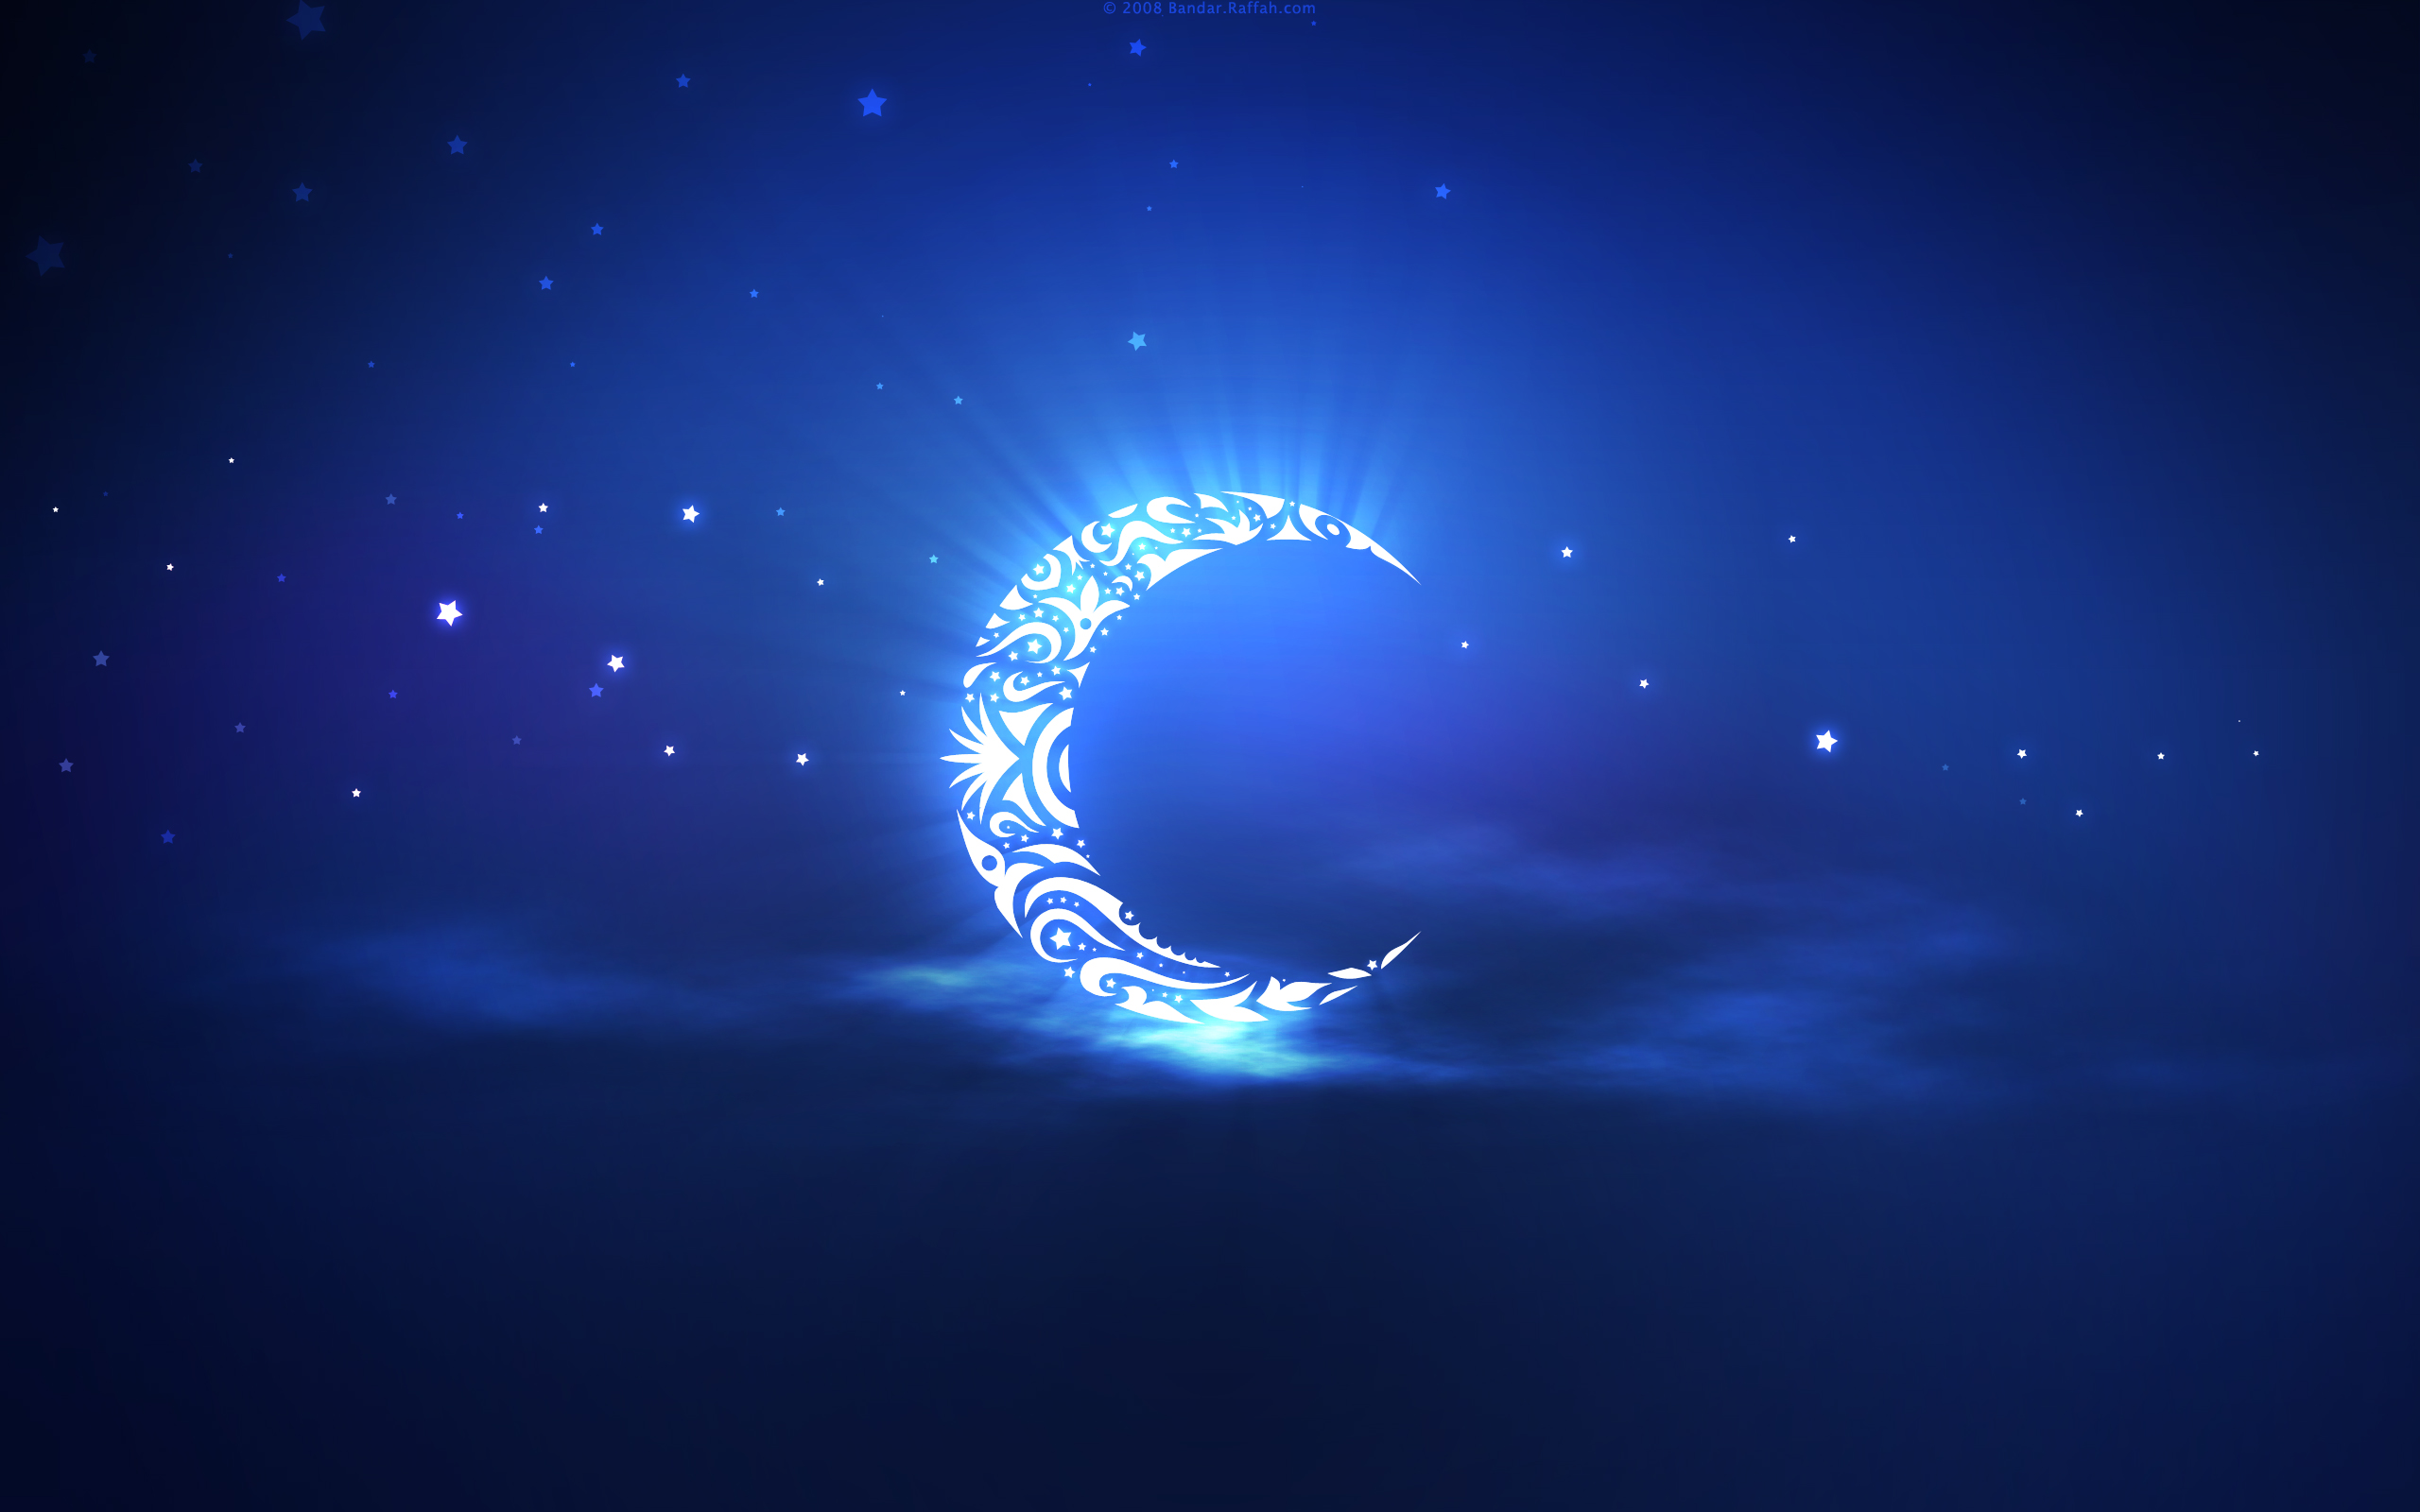 http://www.therevival.co.uk/sites/default/files/08-Ramadan-Kareem-Wallpaper.jpg